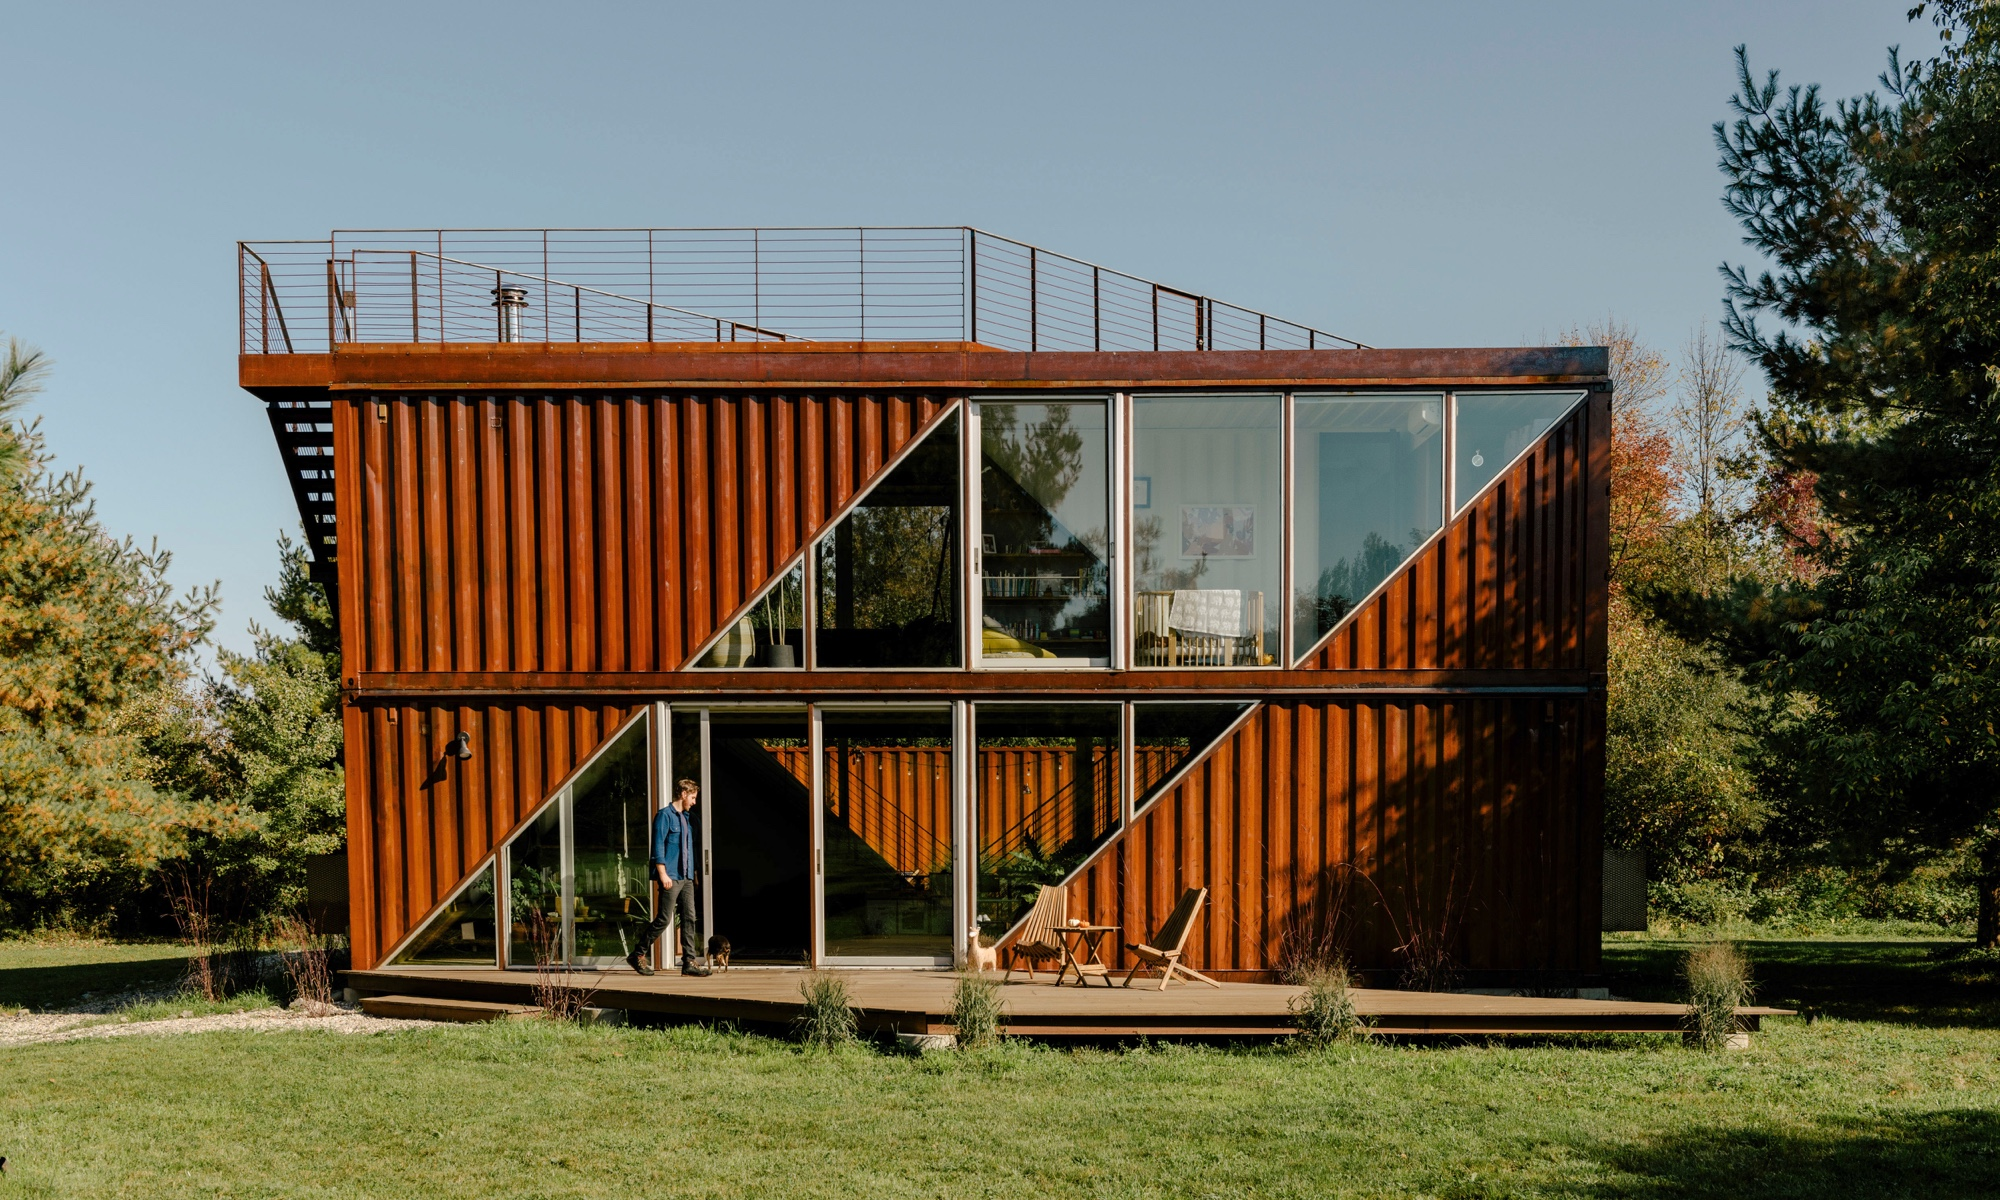 Just outside of Hudson, NY, Dave Sutton and Victoria Masters used shipping containers to build their home.